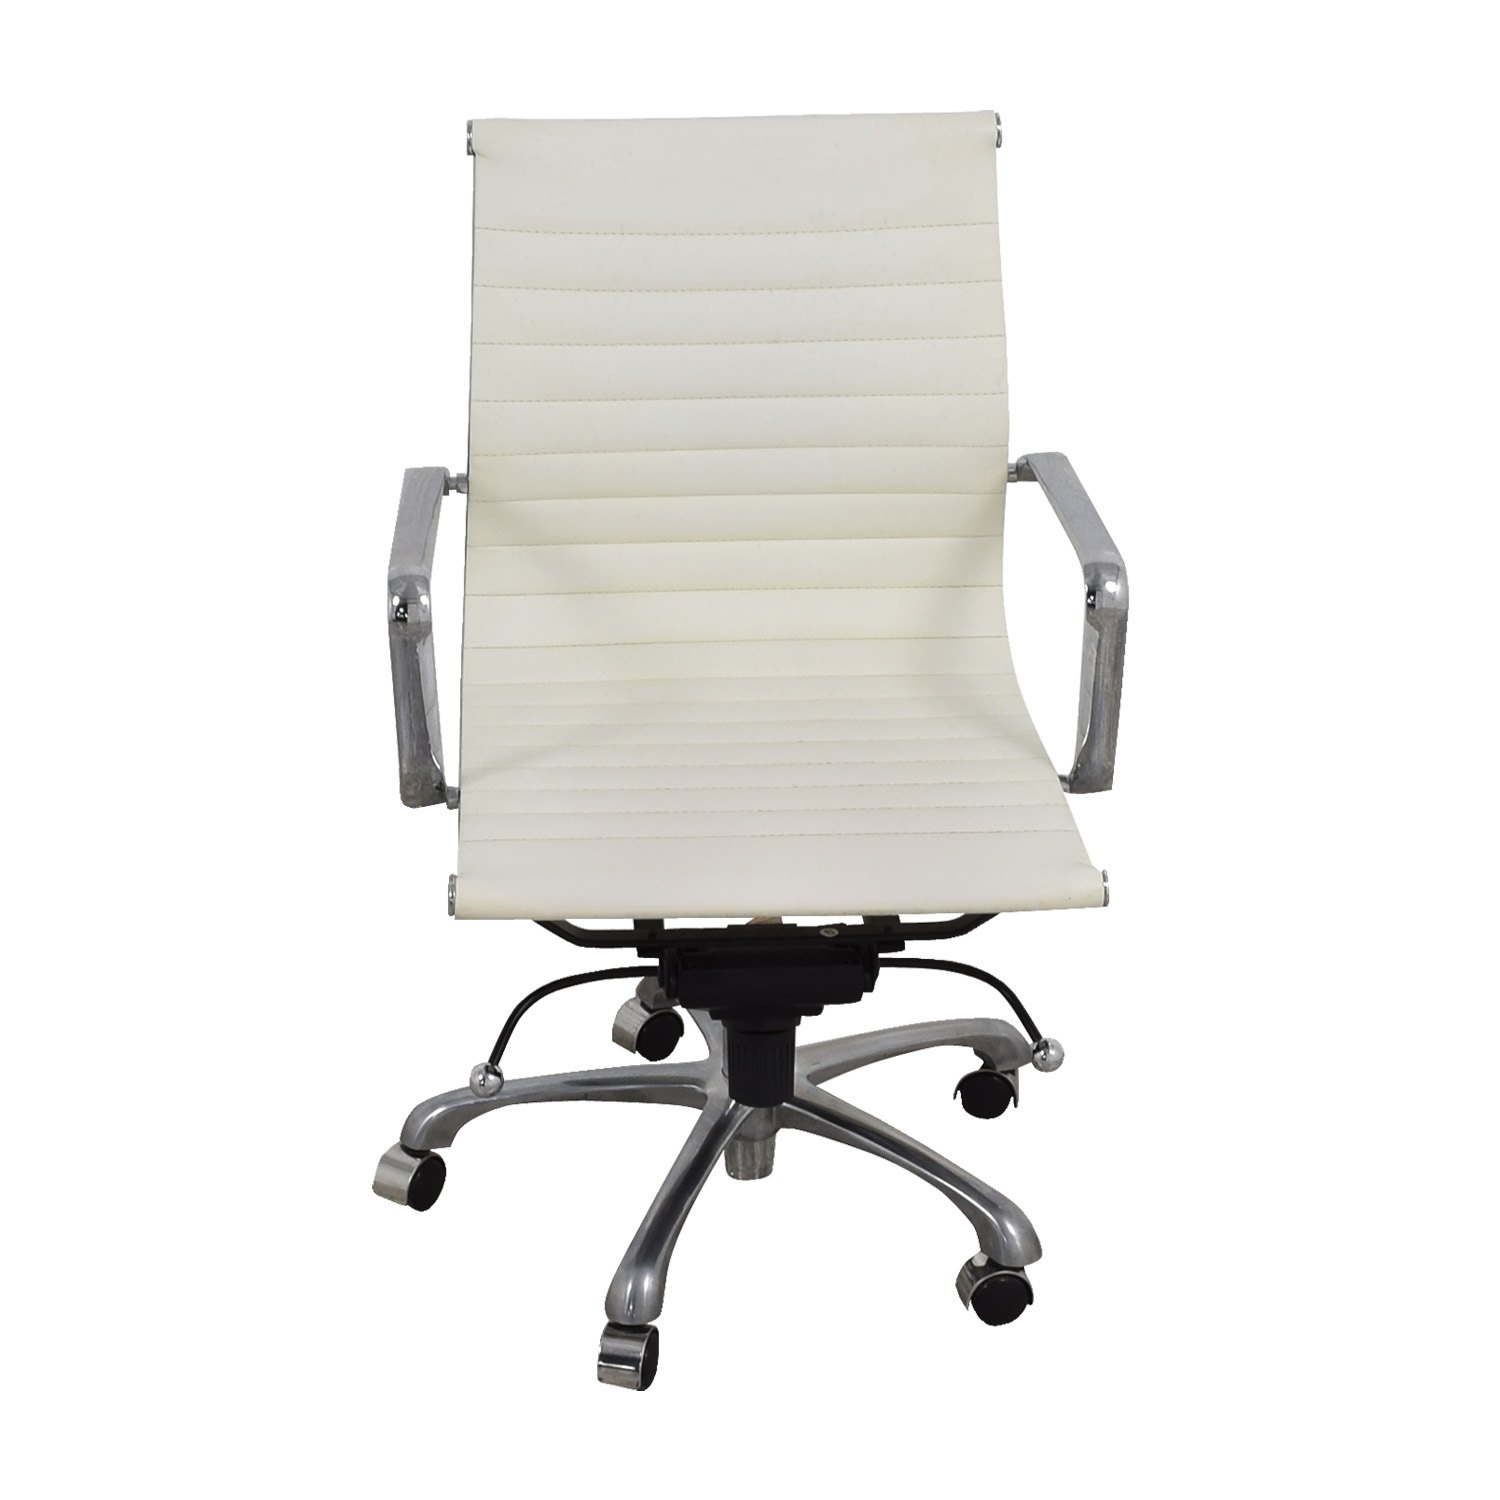 Office Chairs White 84 Off White And Chrome Office Chair Chairs